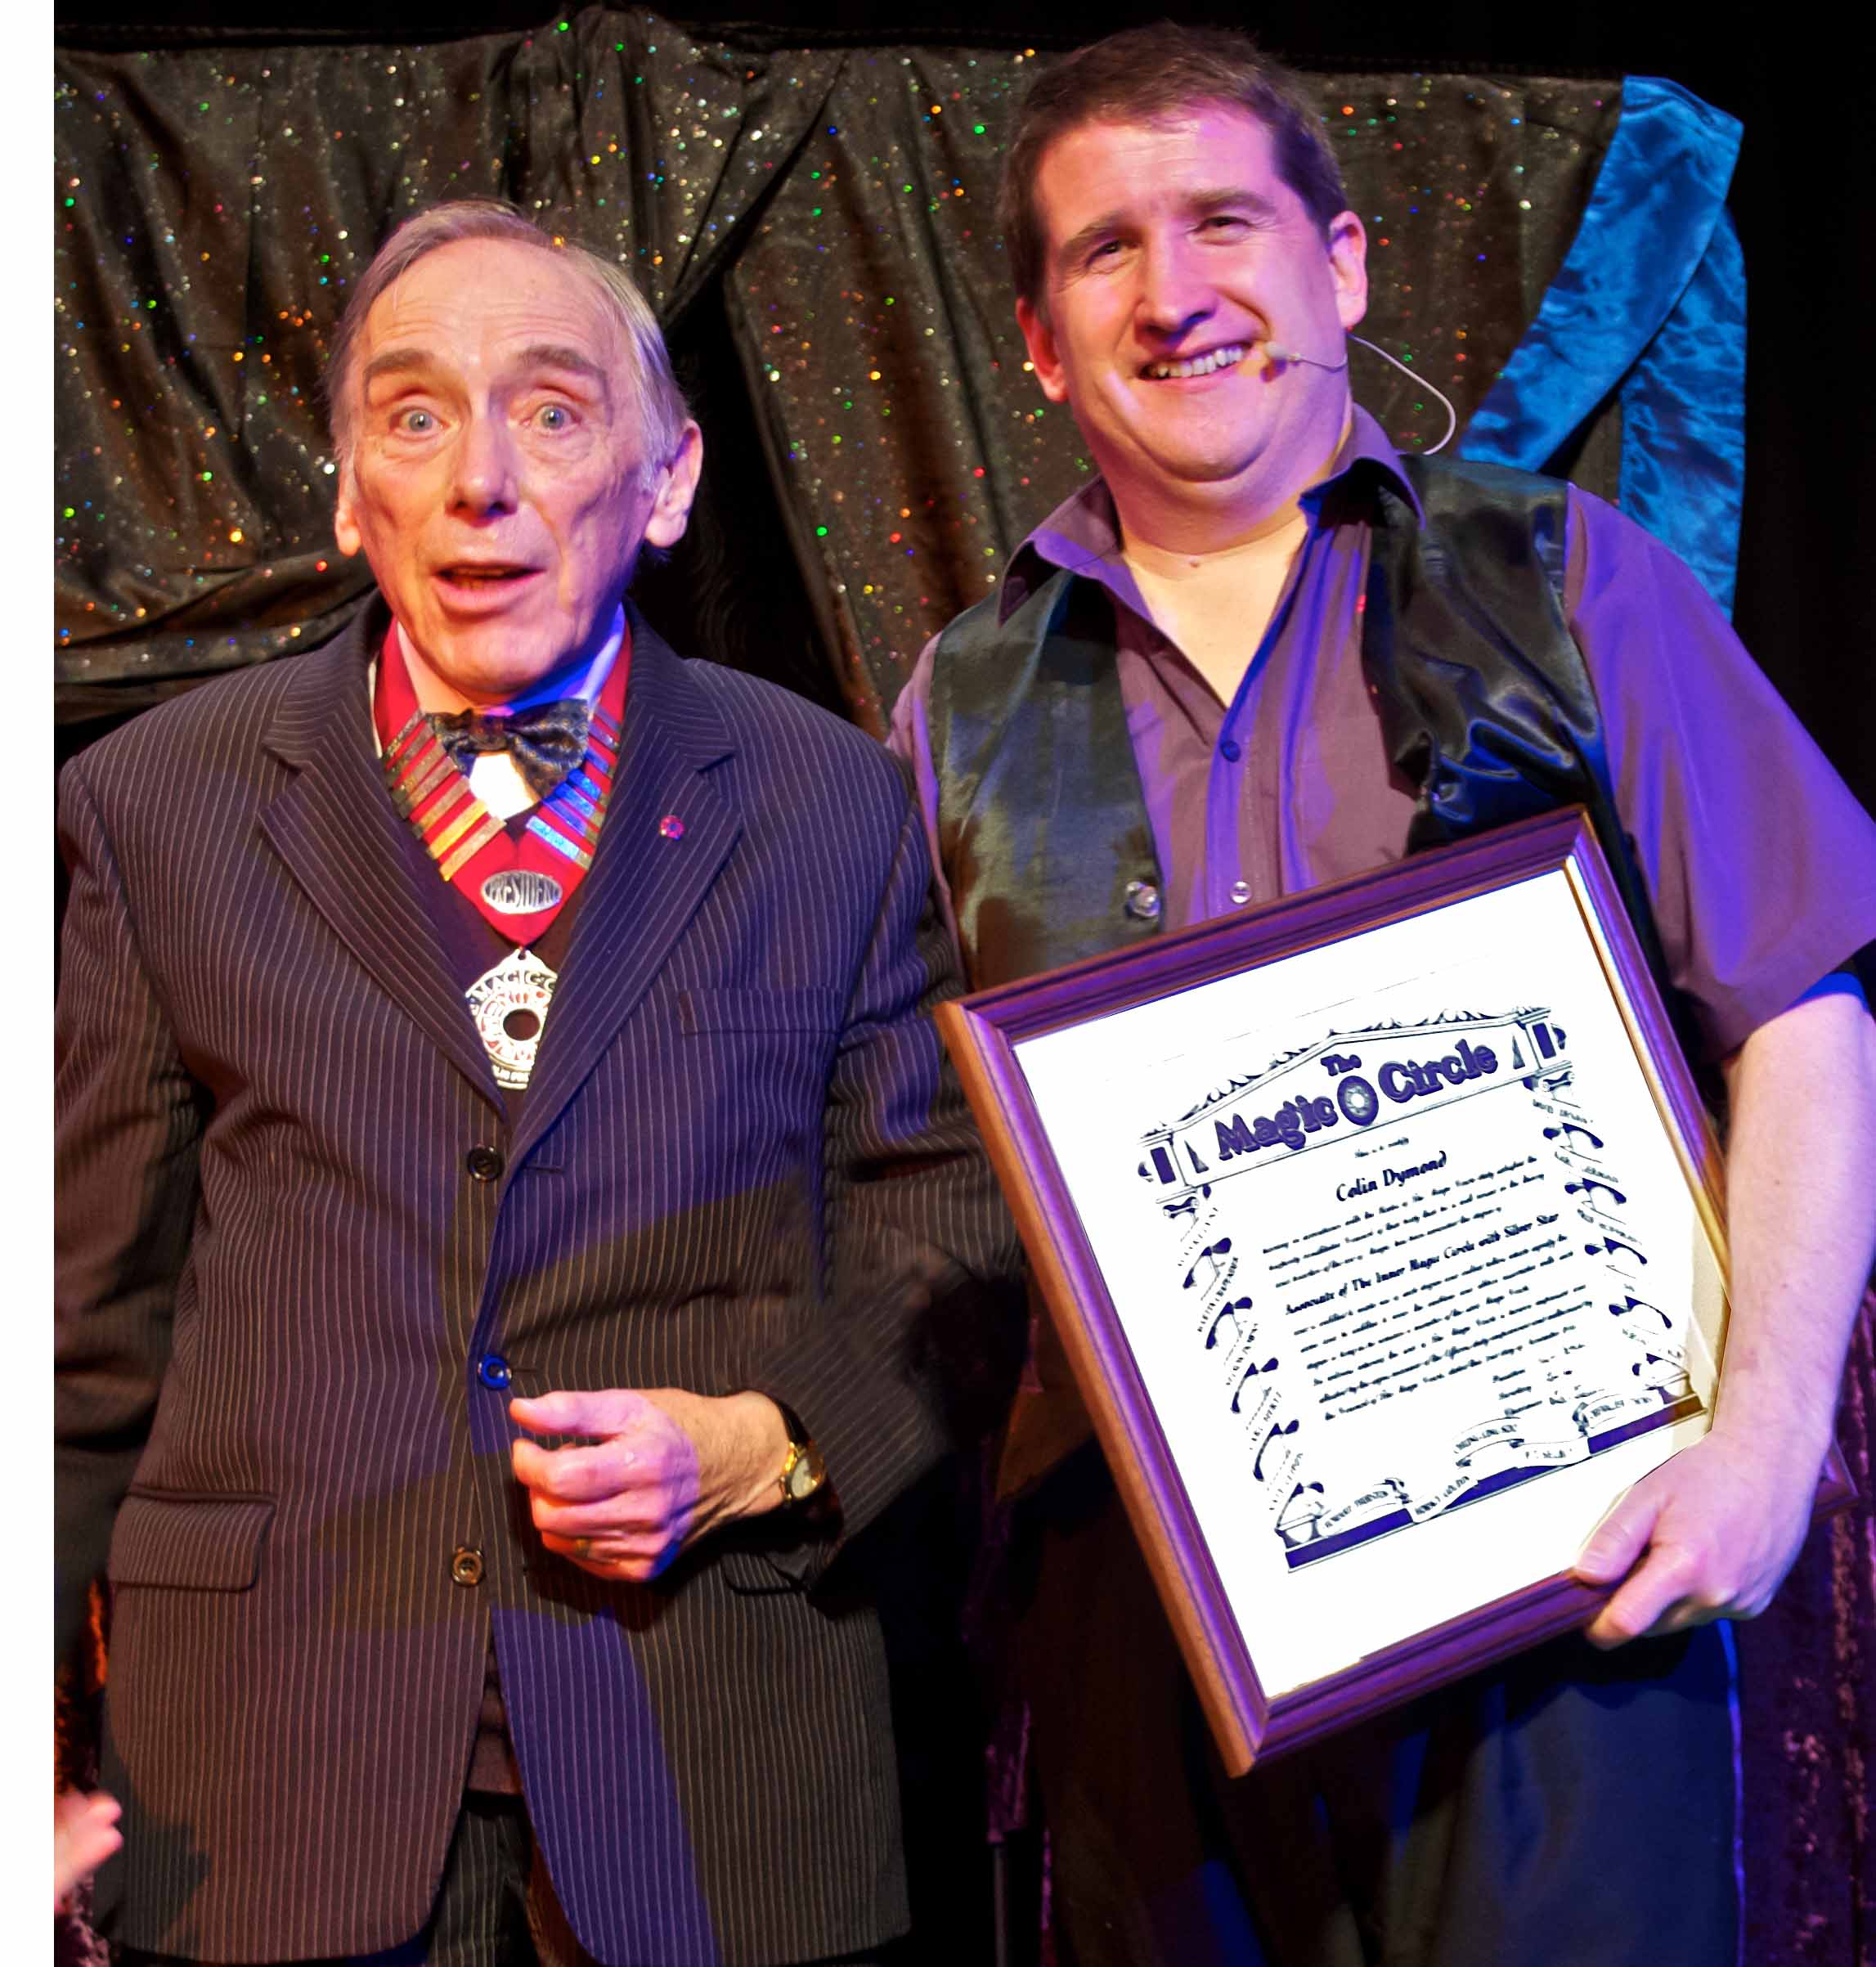 Colin receiving his A.I.M.C. from the president of The Magic Circle, Jack Delvin.